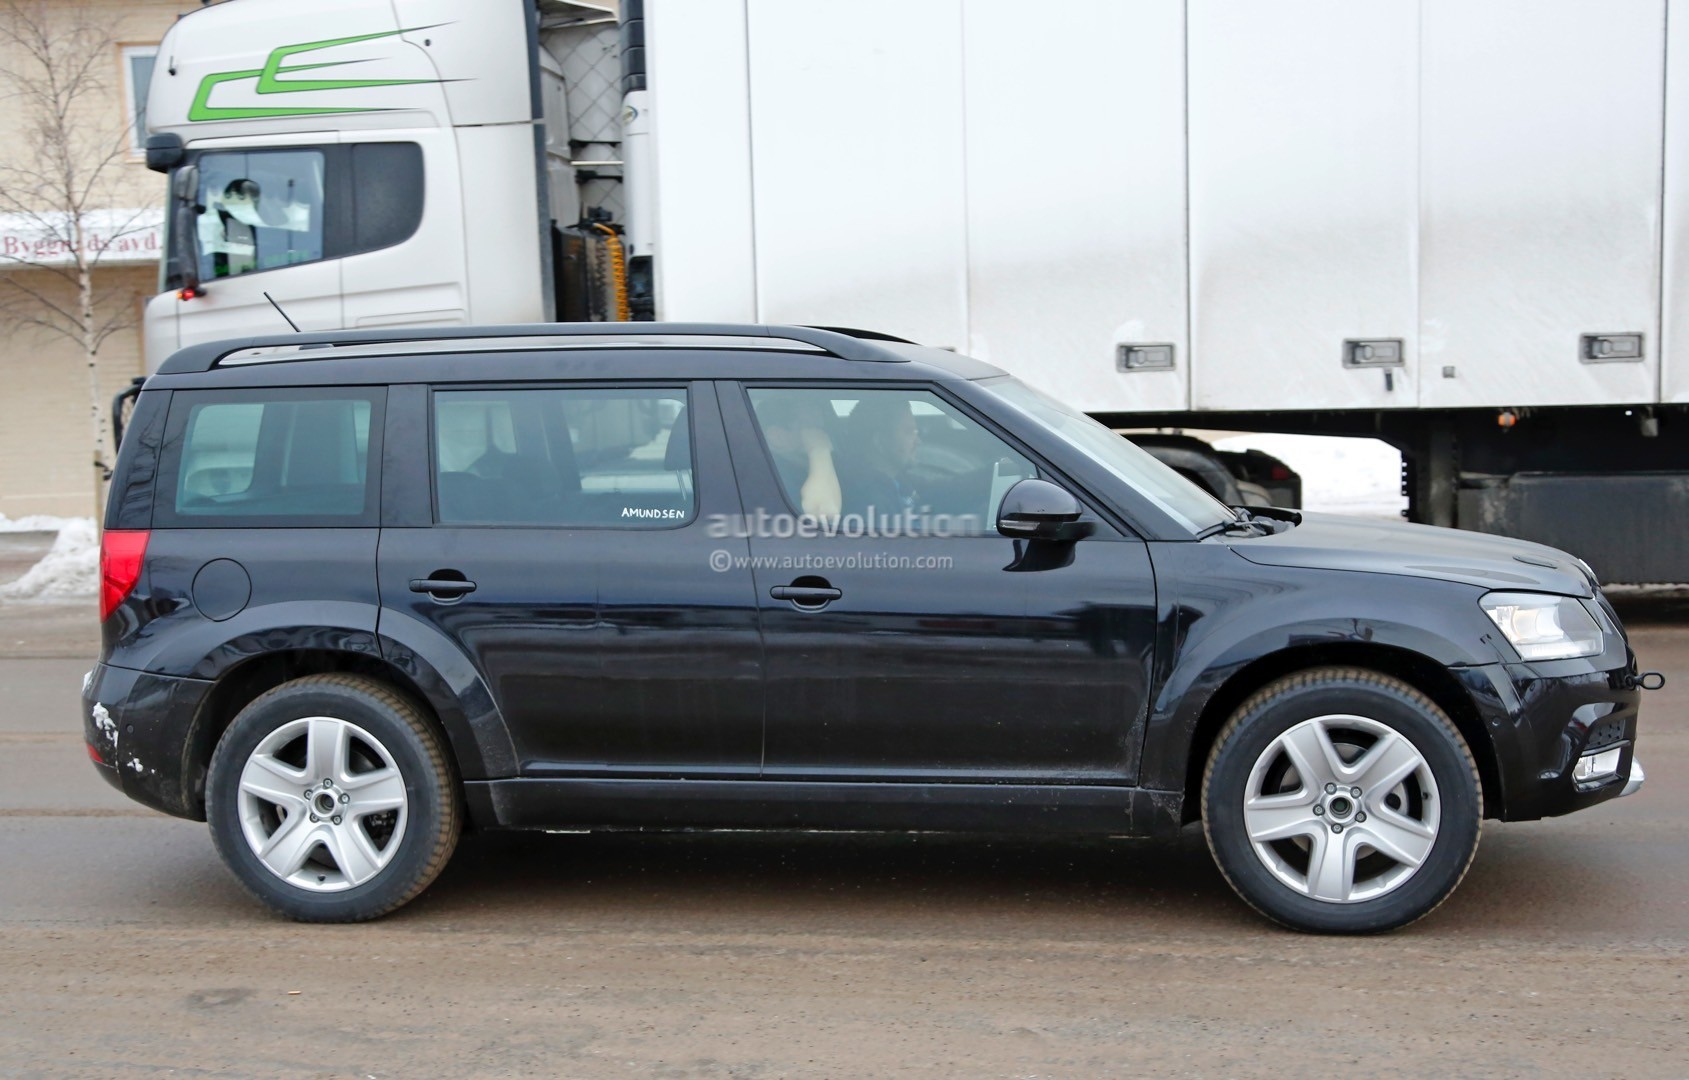 Mysterious Skoda Yeti Mule Spied Testing, Could Preview Much Bigger SUV - autoevolution